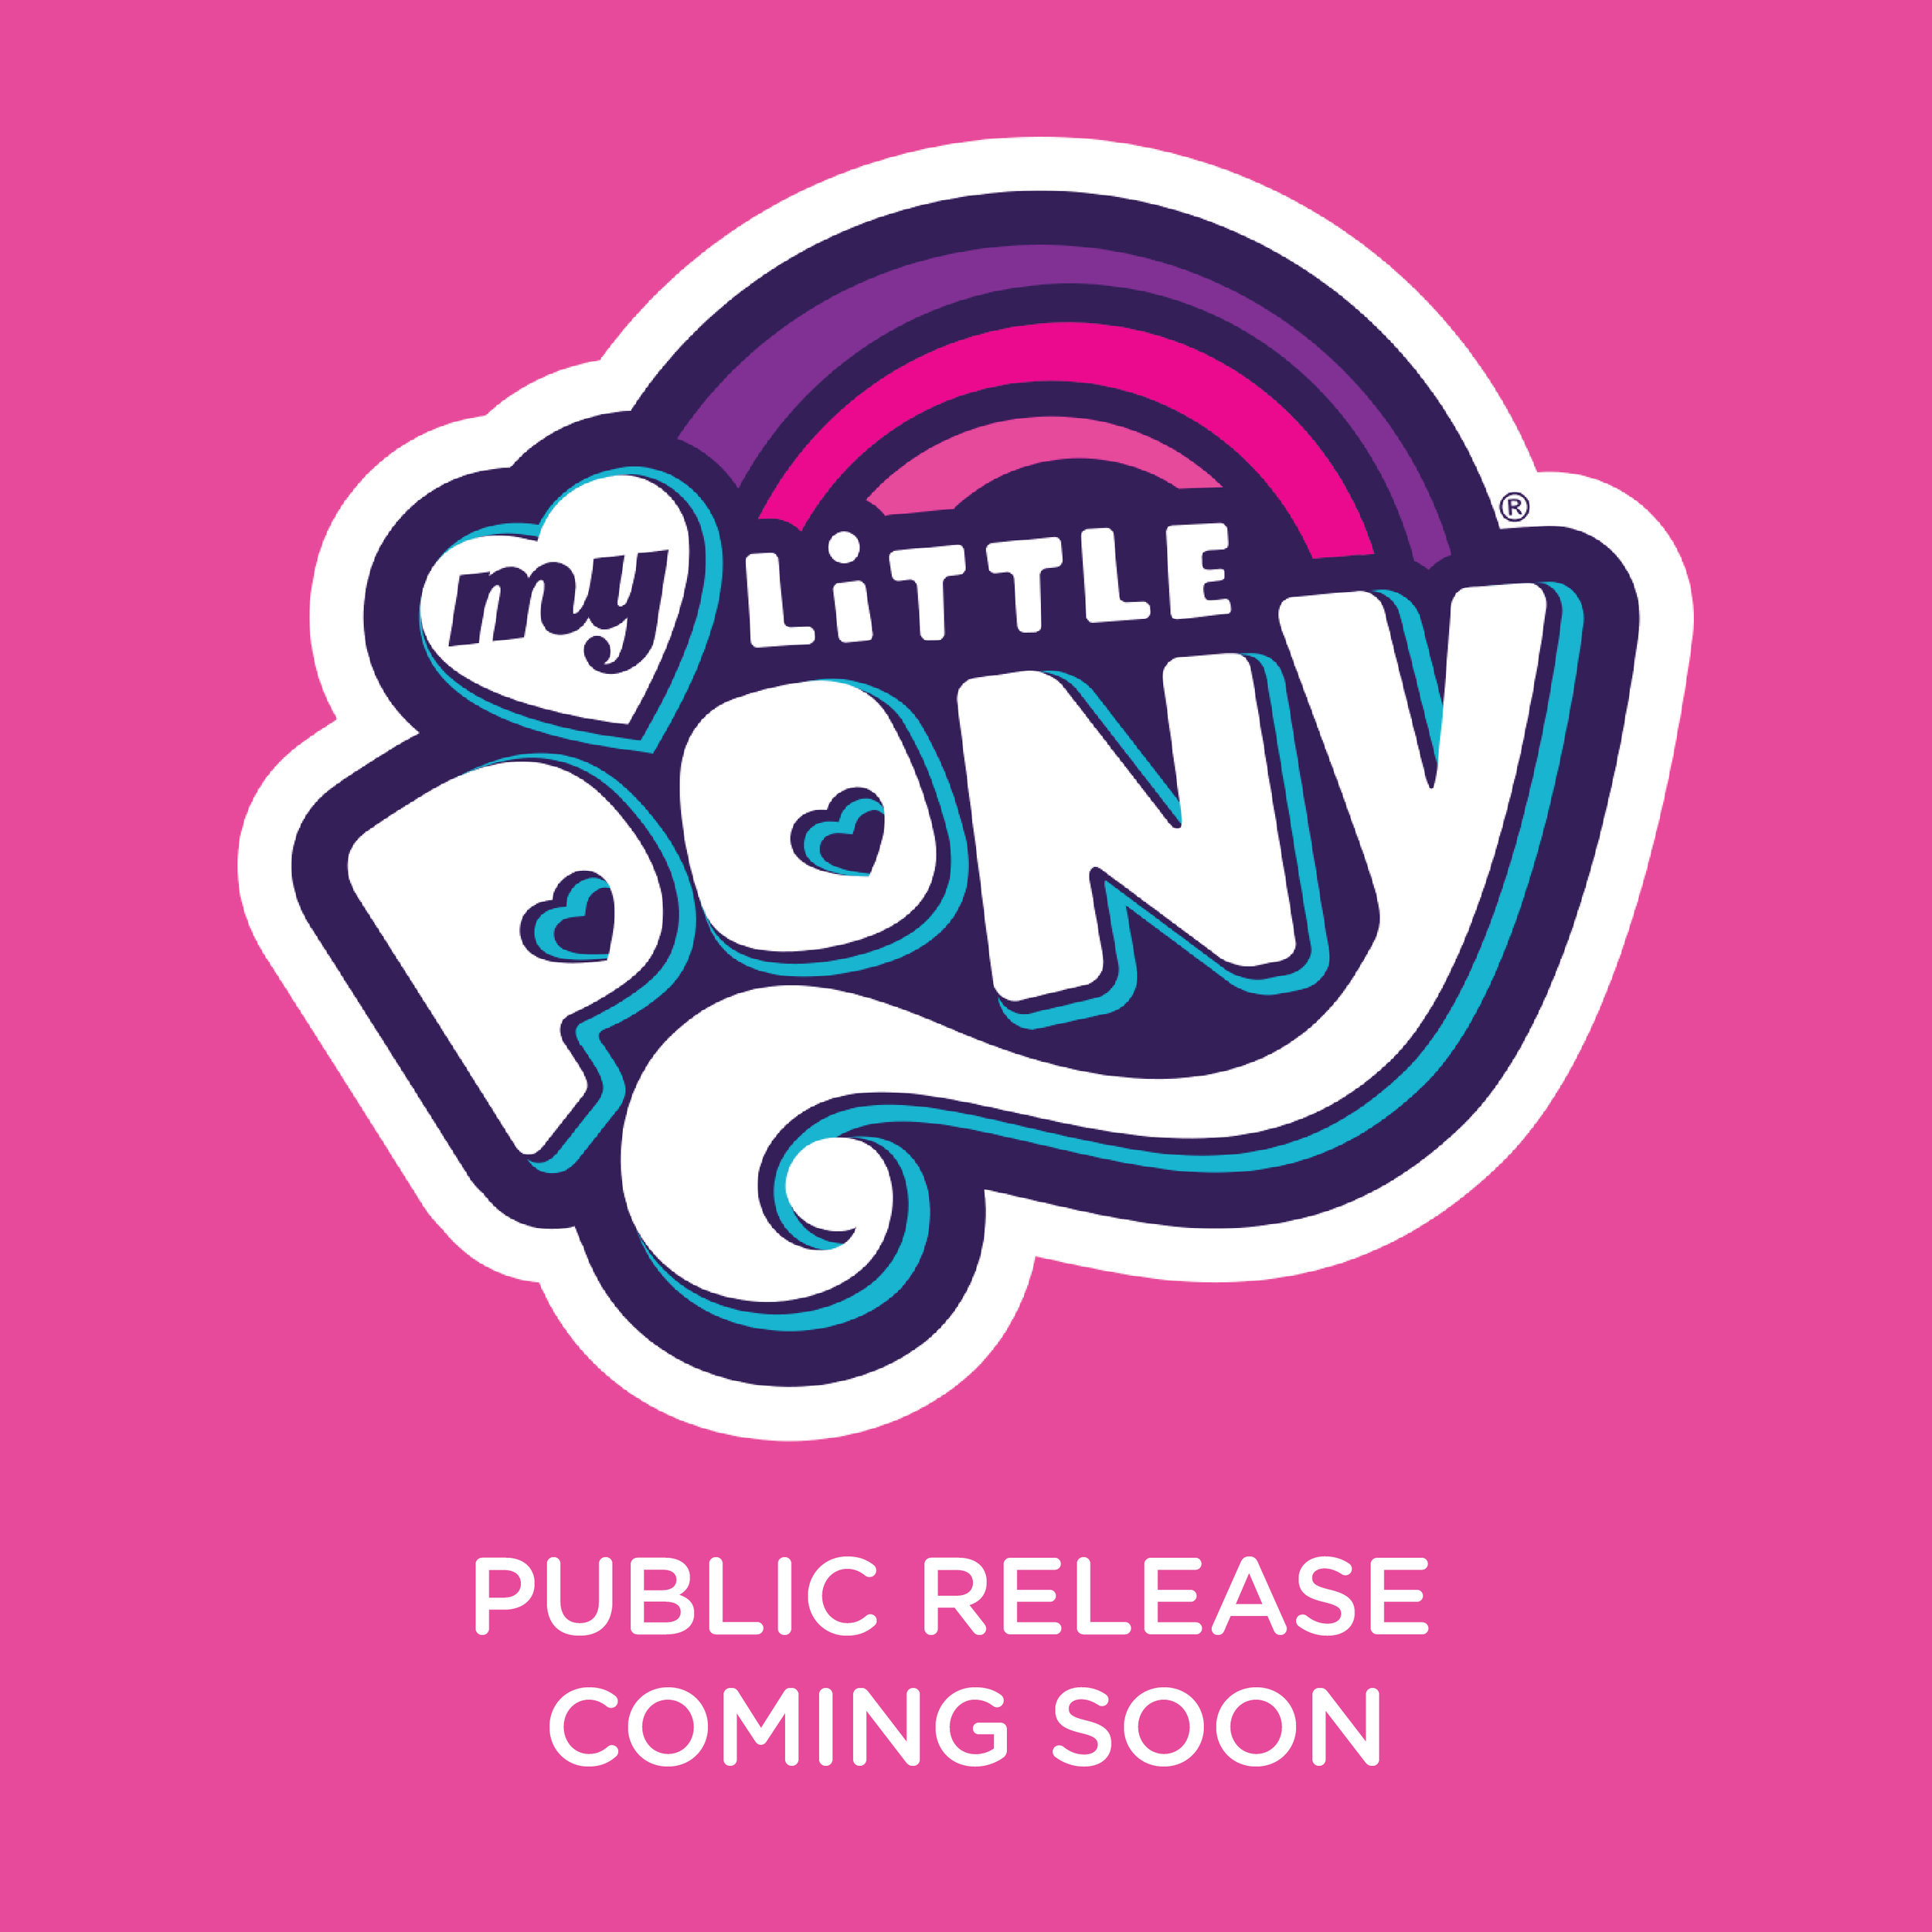 My Little Pony - Package Design